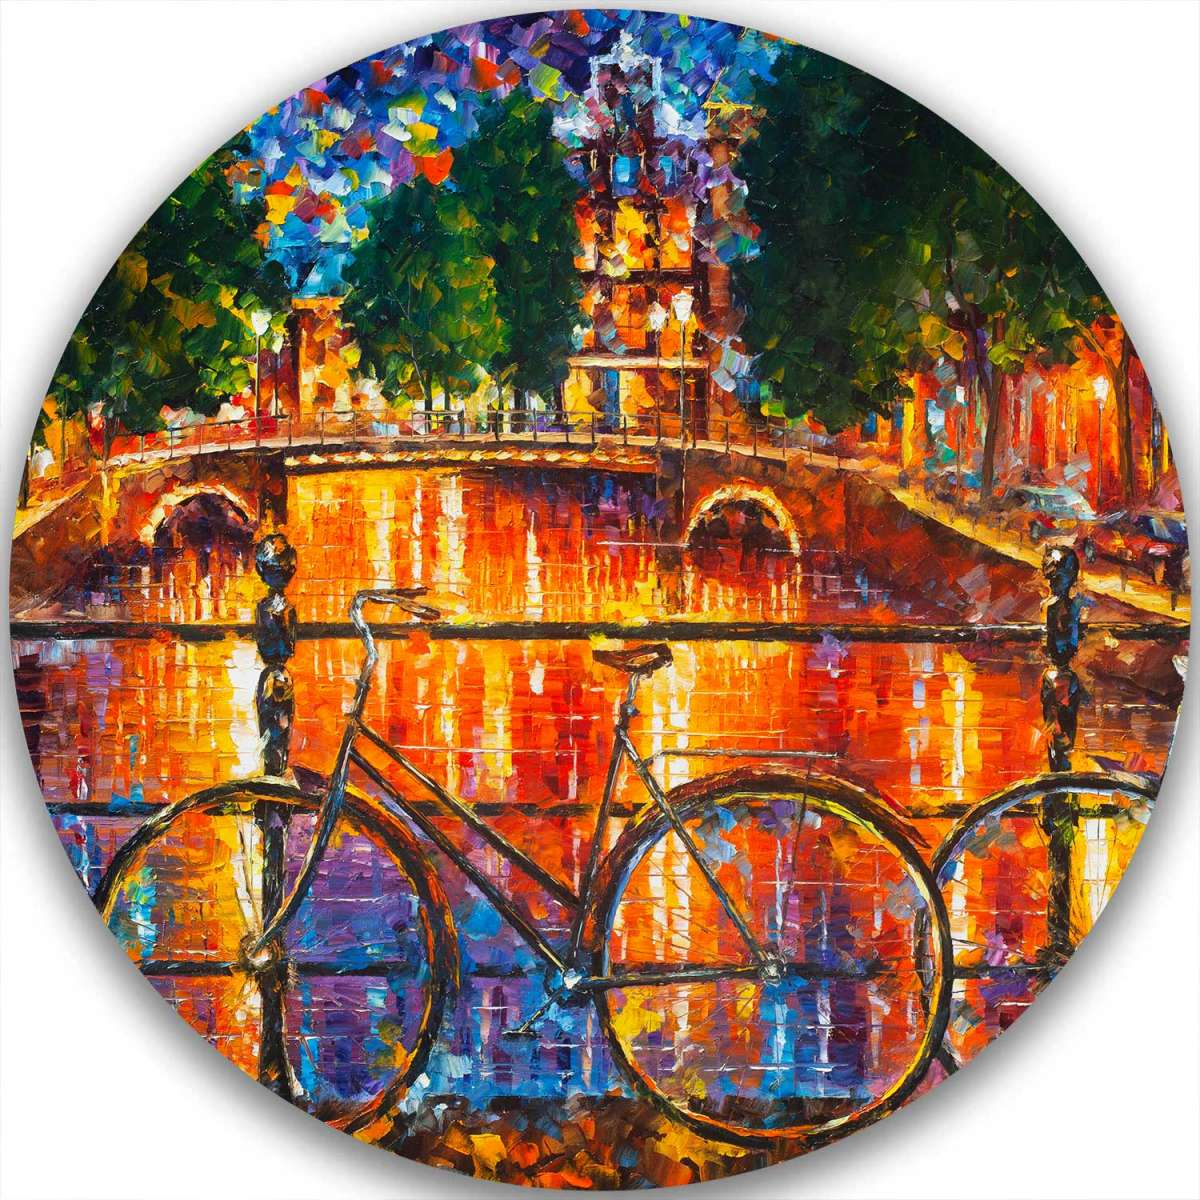 AMSTERDAM - THE BRIDGE OF BICYCLES - LIMITED EDITION CIRCLE GICLEE